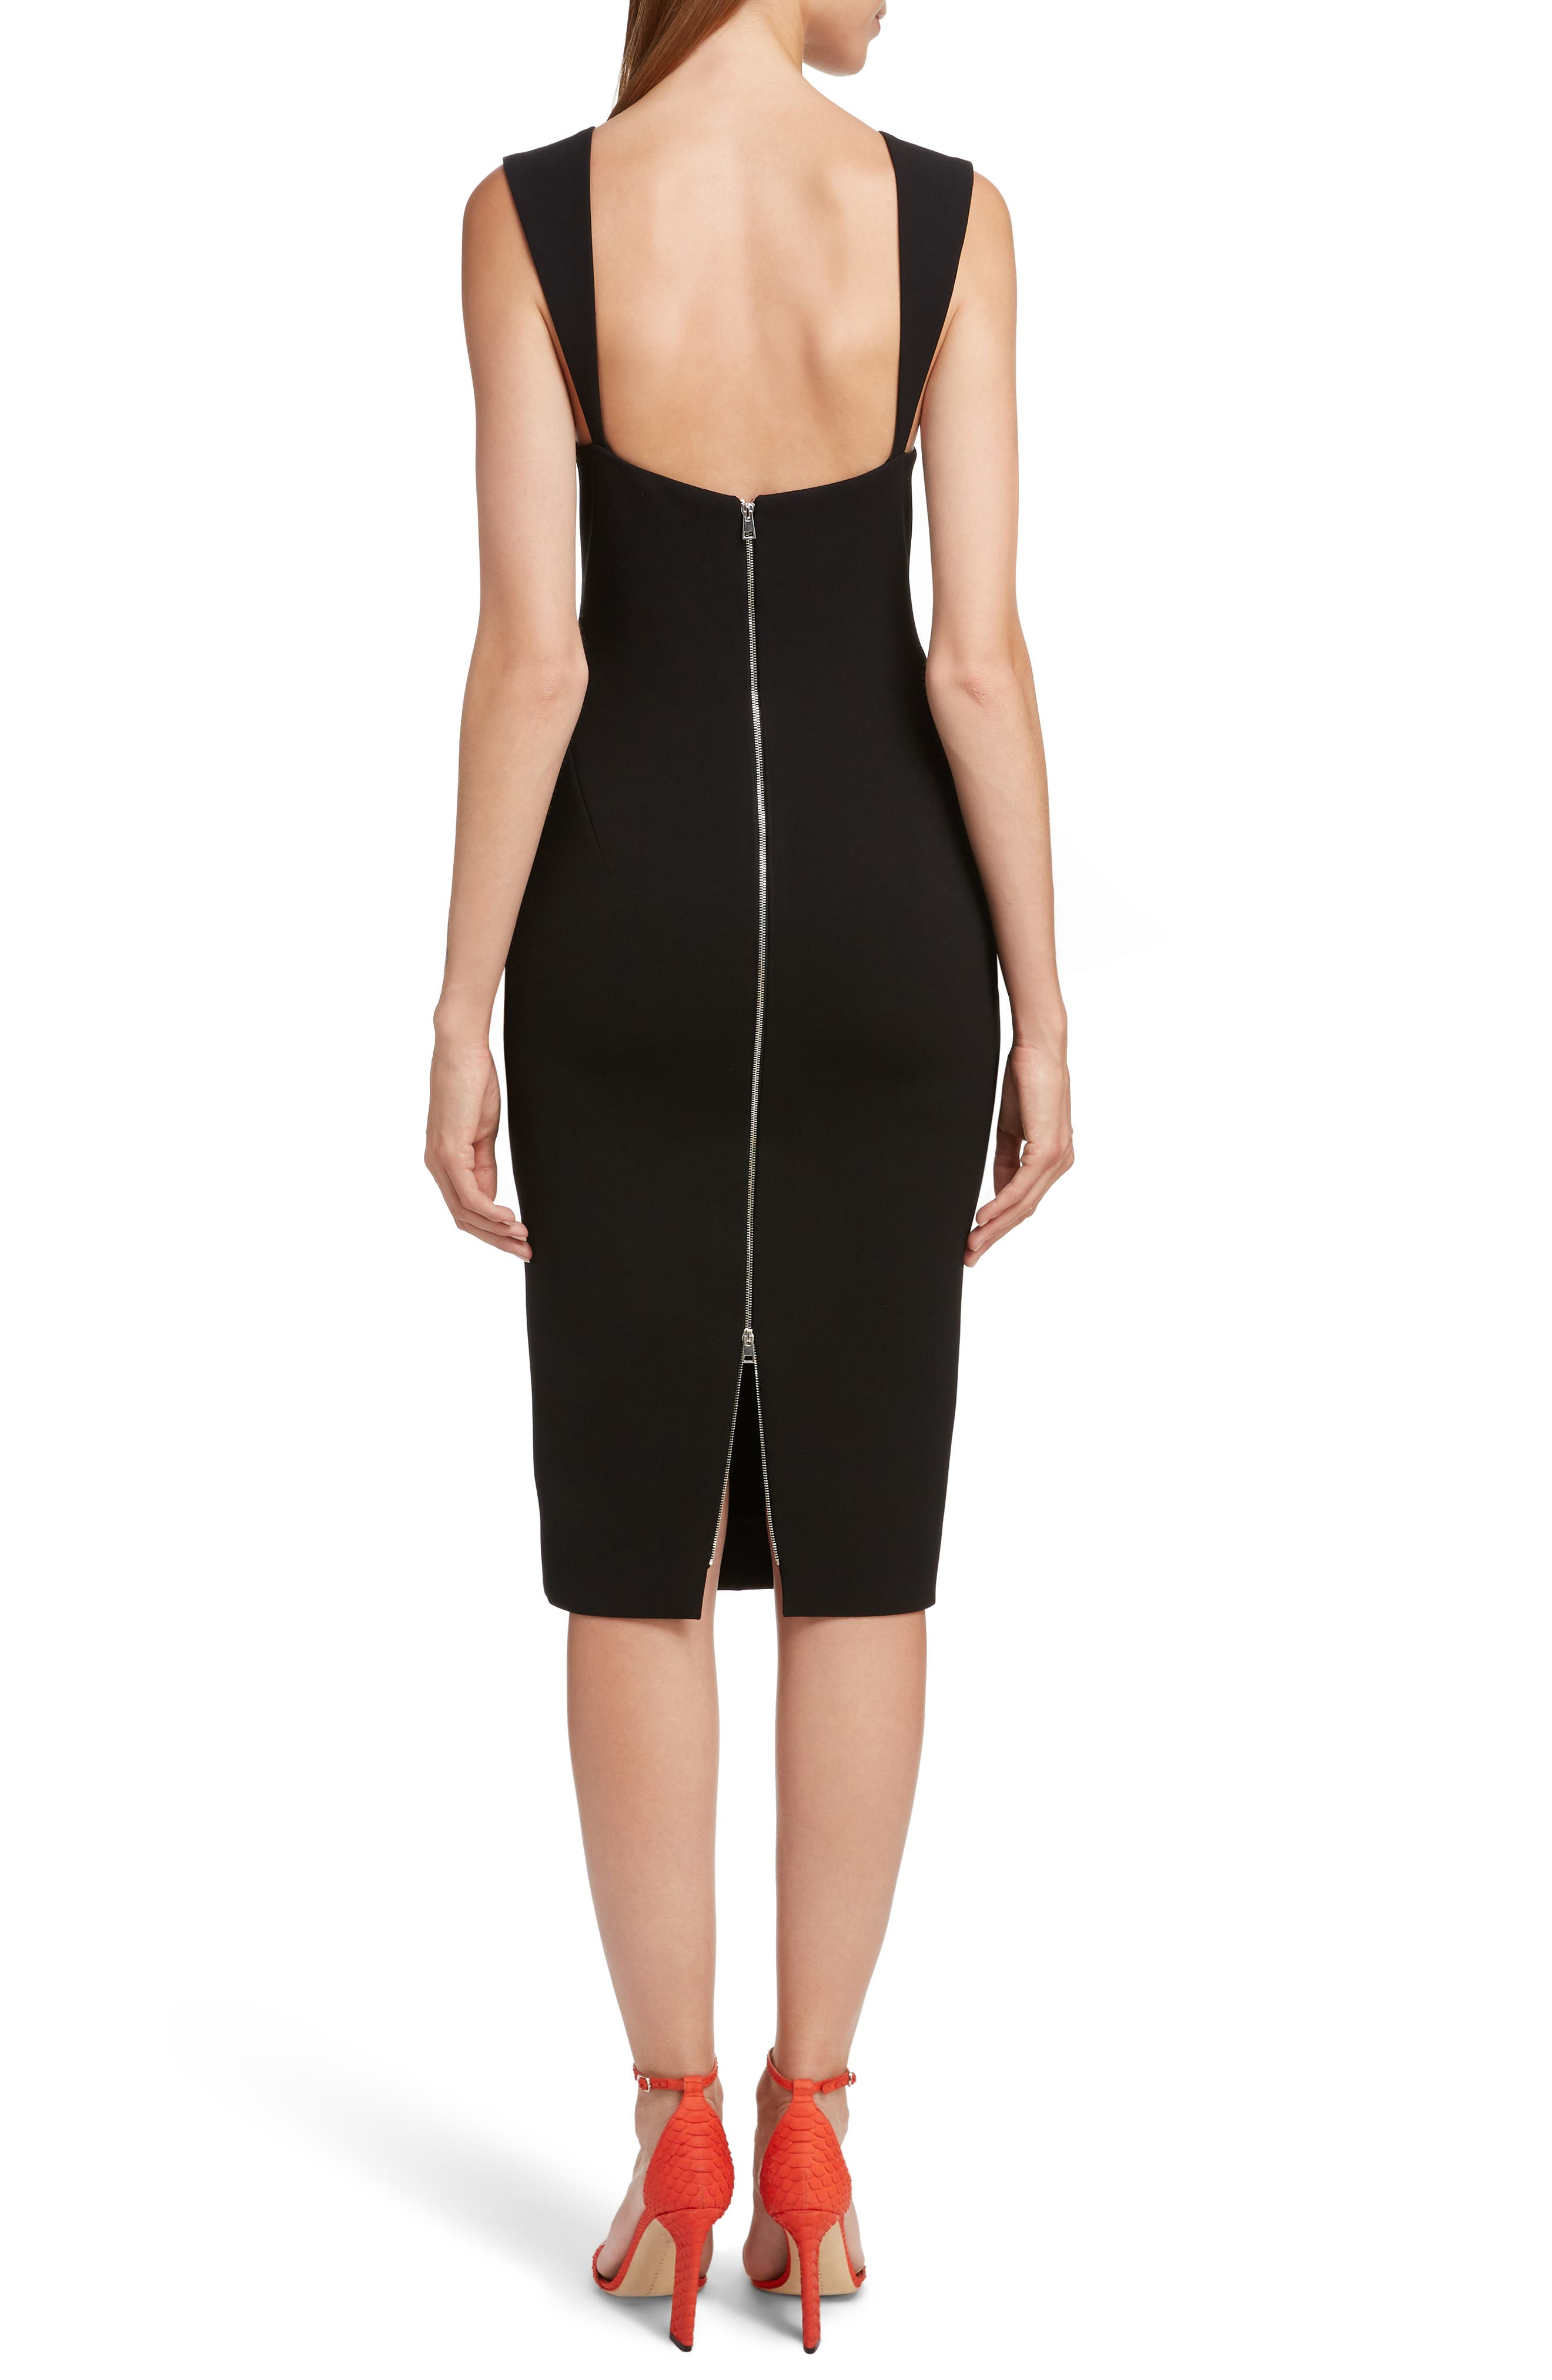 VICTORIA BECKHAM, Sweetheart Neck Body-Con Dress, Alternate thumbnail 2, color, BLACK